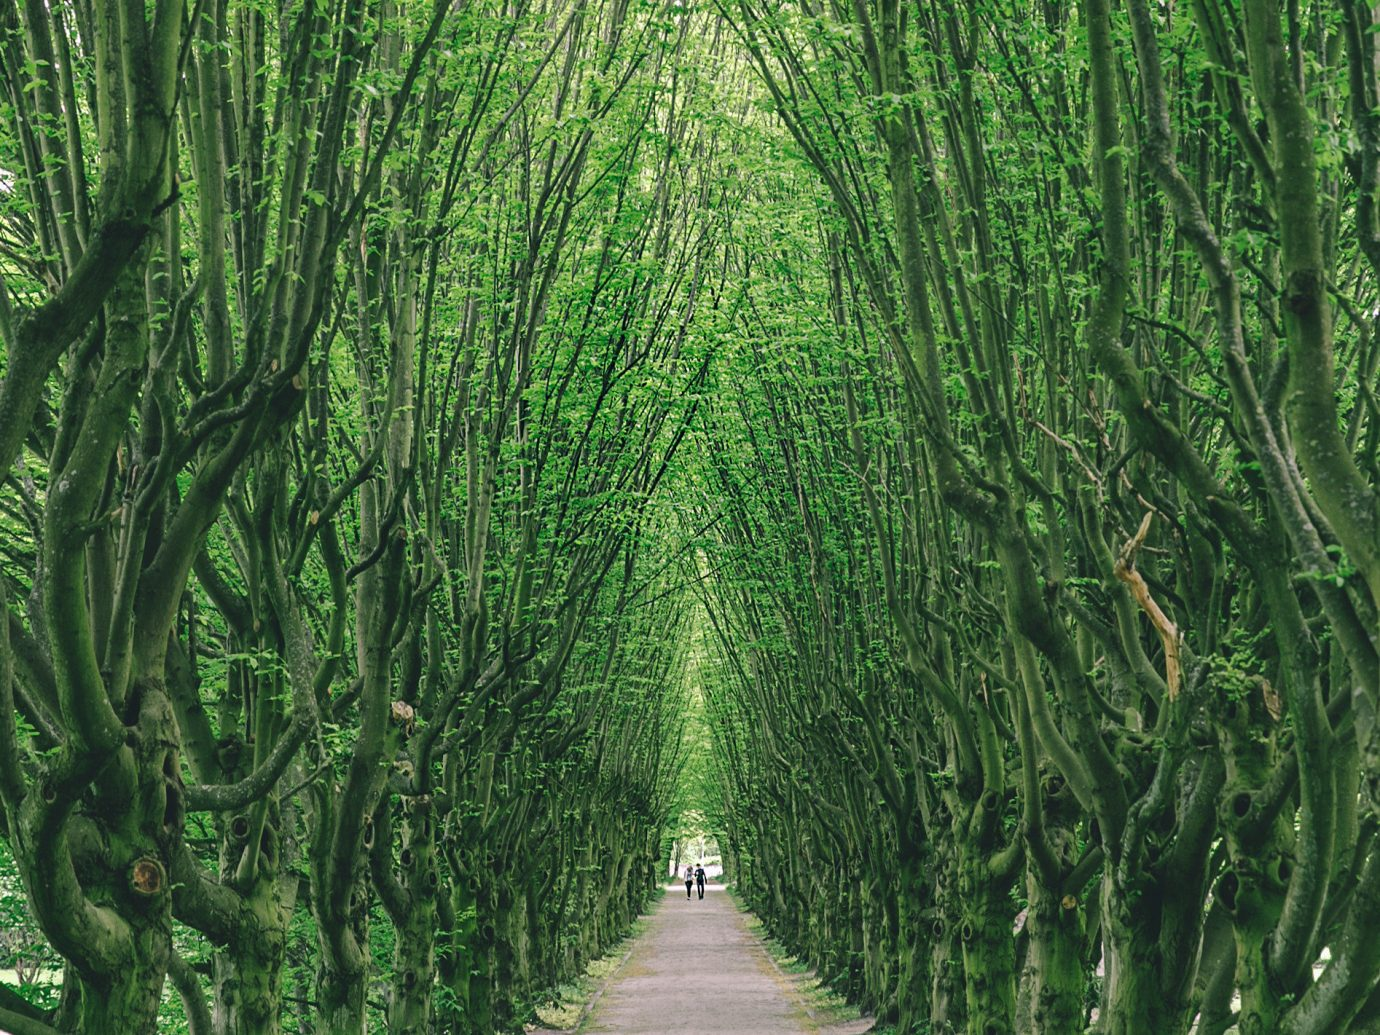 Travel Tips tree outdoor habitat green Nature plant vegetation natural environment ecosystem Forest grass botany woodland leaf woody plant arecales grass family rainforest sunlight Jungle plantation plant stem deciduous bamboo flower temperate coniferous forest